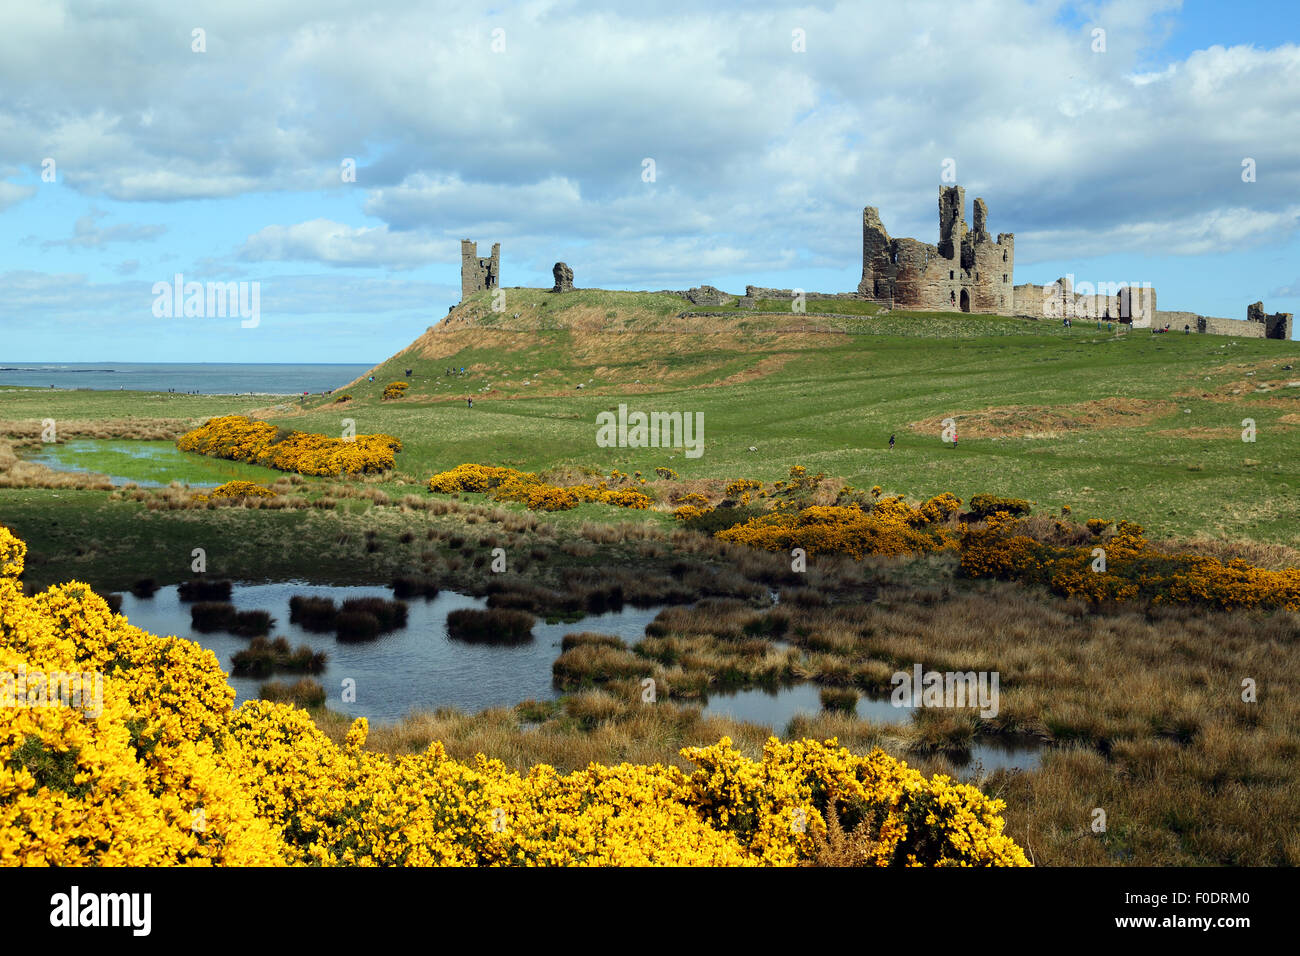 Dunstanburgh Castle, Northumberland, with a pond and Gorse in flower in the foreground - Stock Image